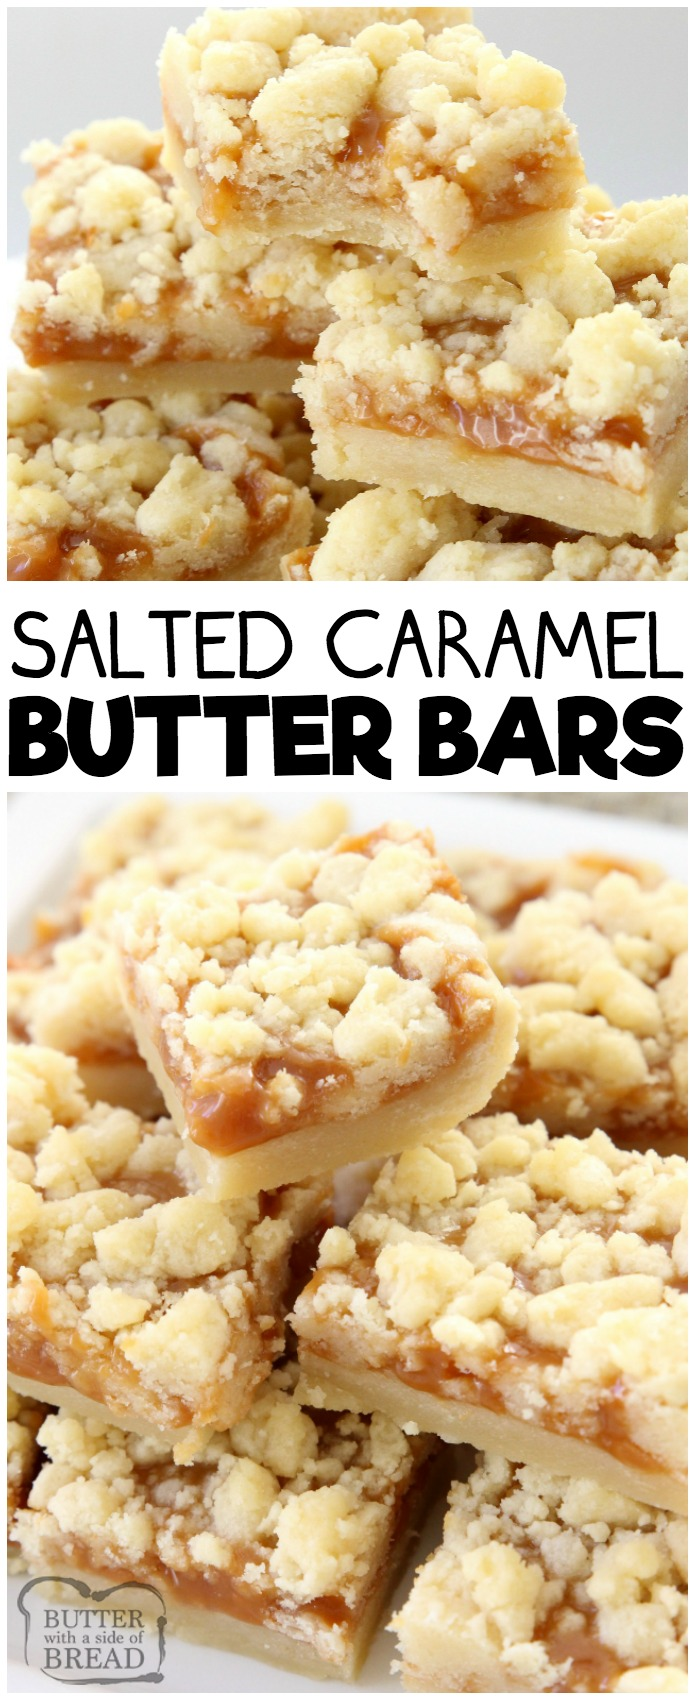 Salted Caramel Bar recipe made with a sweet shortbread crust & topped with smooth caramel and sea salt. Perfectly indulgent caramel butter bar dessert! #caramel #dessert #butter #baking #recipe from BUTTER WITH A SIDE OF BREAD